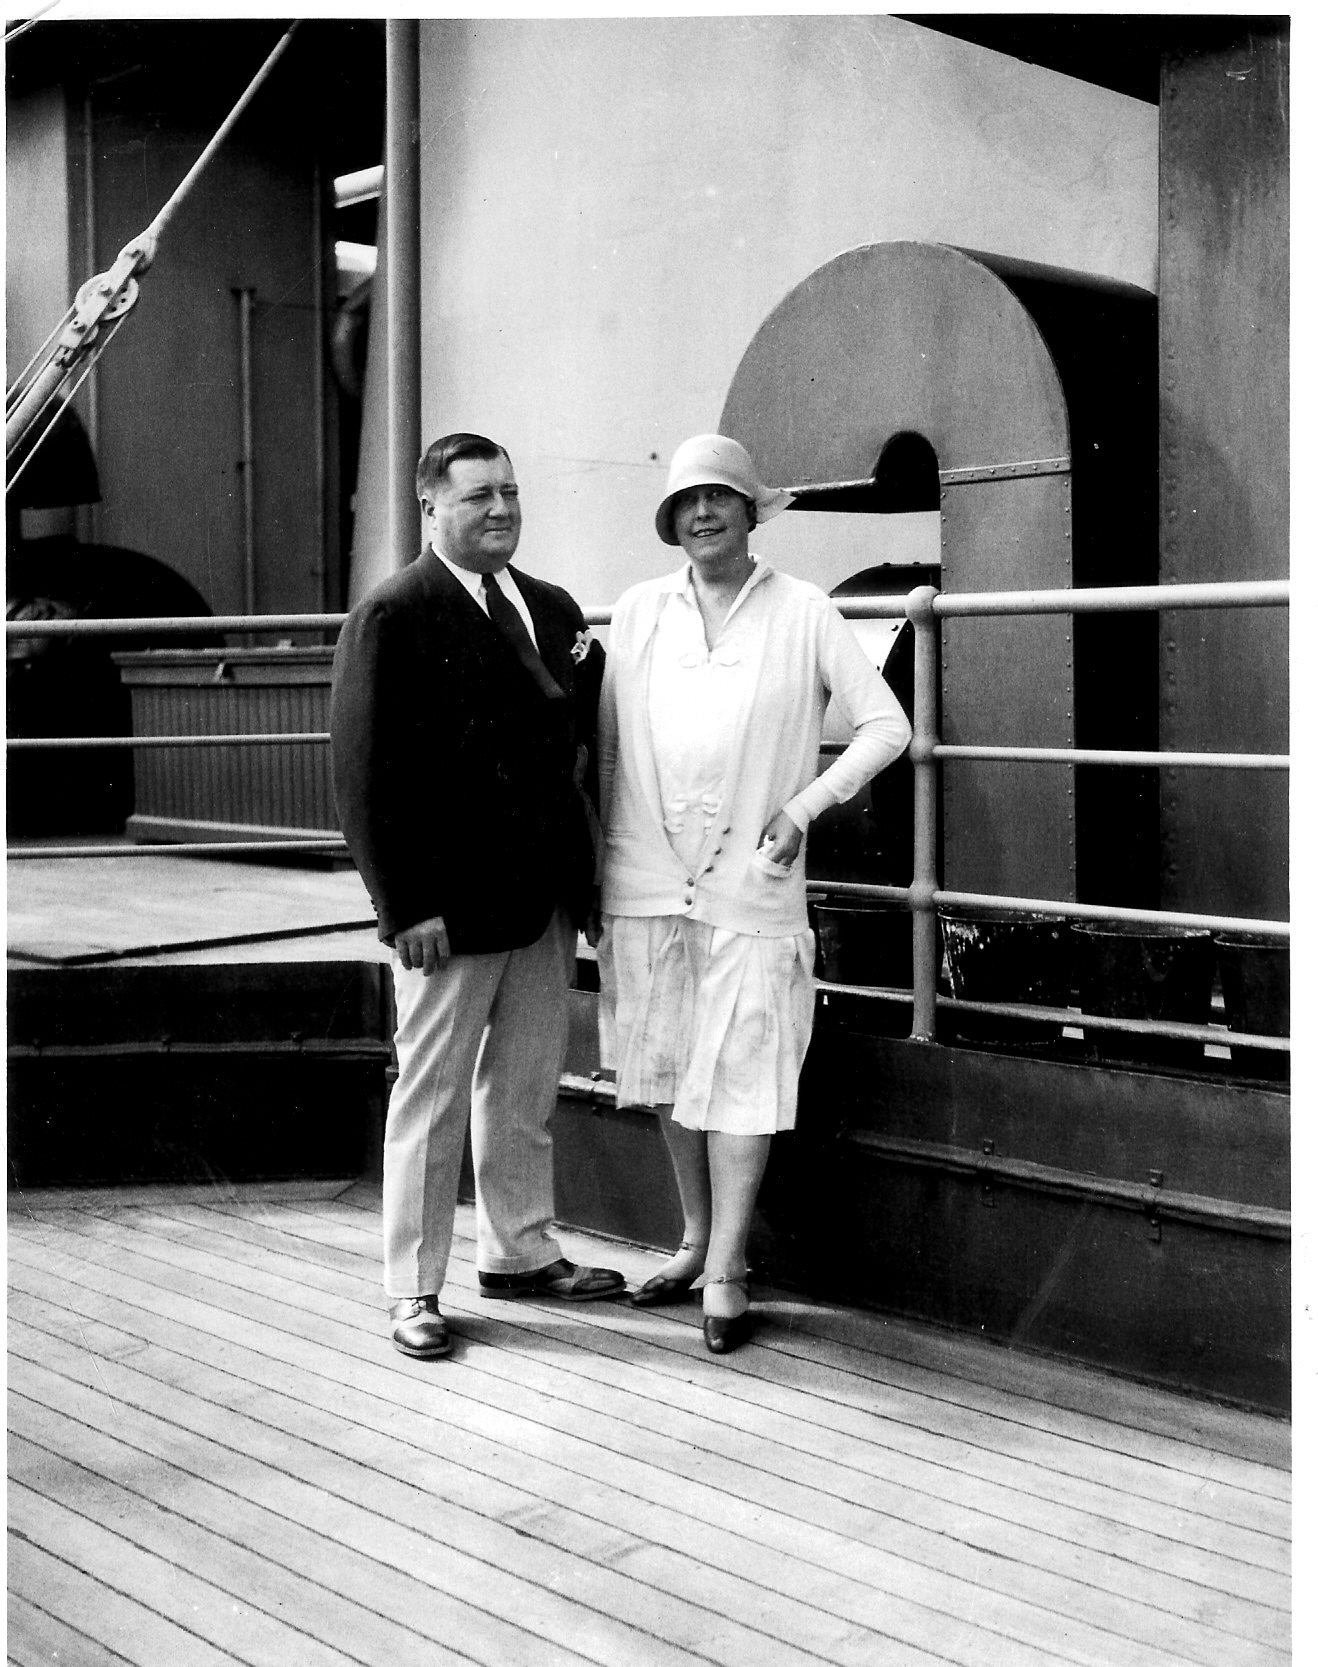 Fred and Edna Suhr